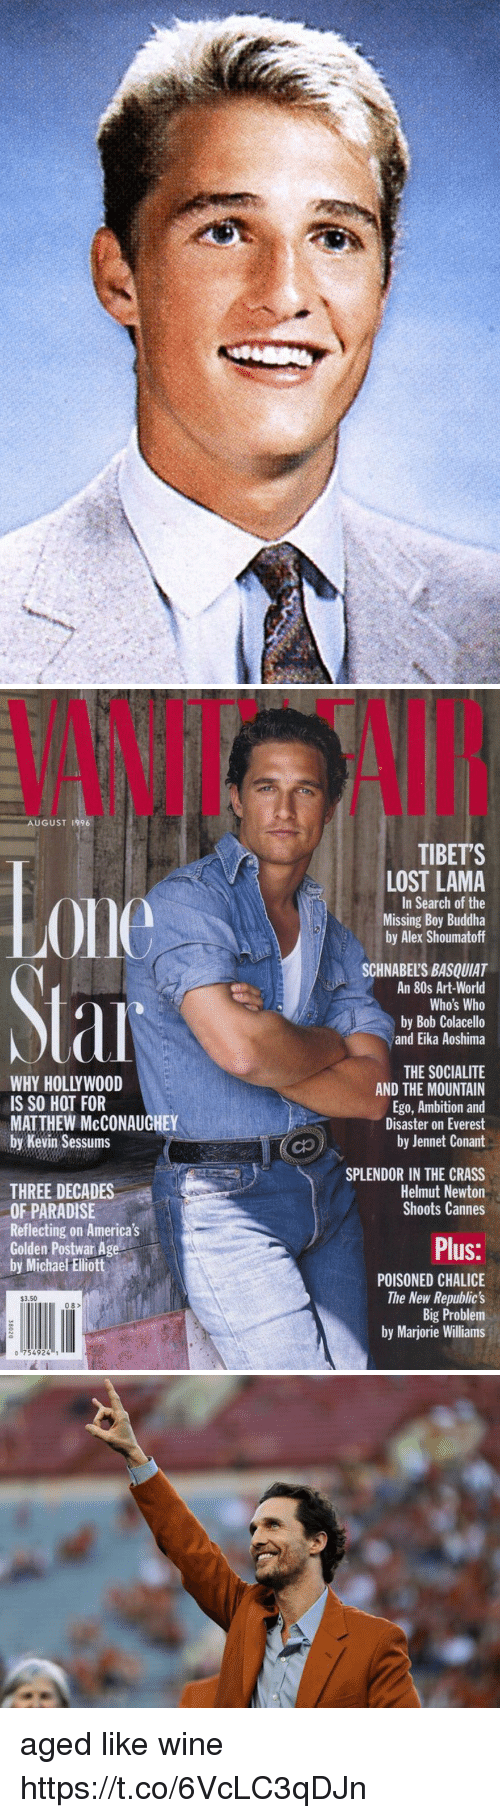 80s, Matthew McConaughey, and Paradise: VANIT  AI  AUGUST 1996  TIBETS  0ne  LOST LAMA  In Search of the  Missing Boy Buddha  by Alex Shoumatoff  SCHNABEL'S BASQUIAT  An 80s Art-World  Who's Who  by Bob Colacello  and Eika Aoshima  WHY HOLLYWOOD  IS SO HOT FOR  MATTHEW McCONAUGHEY  by Kevin Sessums  THE SOCIALITE  AND THE MOUNTAIN  Ego, Ambition and  Disaster on Everest  by Jennet Conant  SPLENDOR IN THE CRASS  Helmut Newton  Shoots Cannes  THREE DECADES  OF PARADISE  Reflecting on America's  Golden Postwar Age  by Michae Ellott  Plus:  POISONED CHALICE  The New Republic's  Big Problem  by Marjorie Williams  $3.50  08>  o 754924 aged like wine https://t.co/6VcLC3qDJn